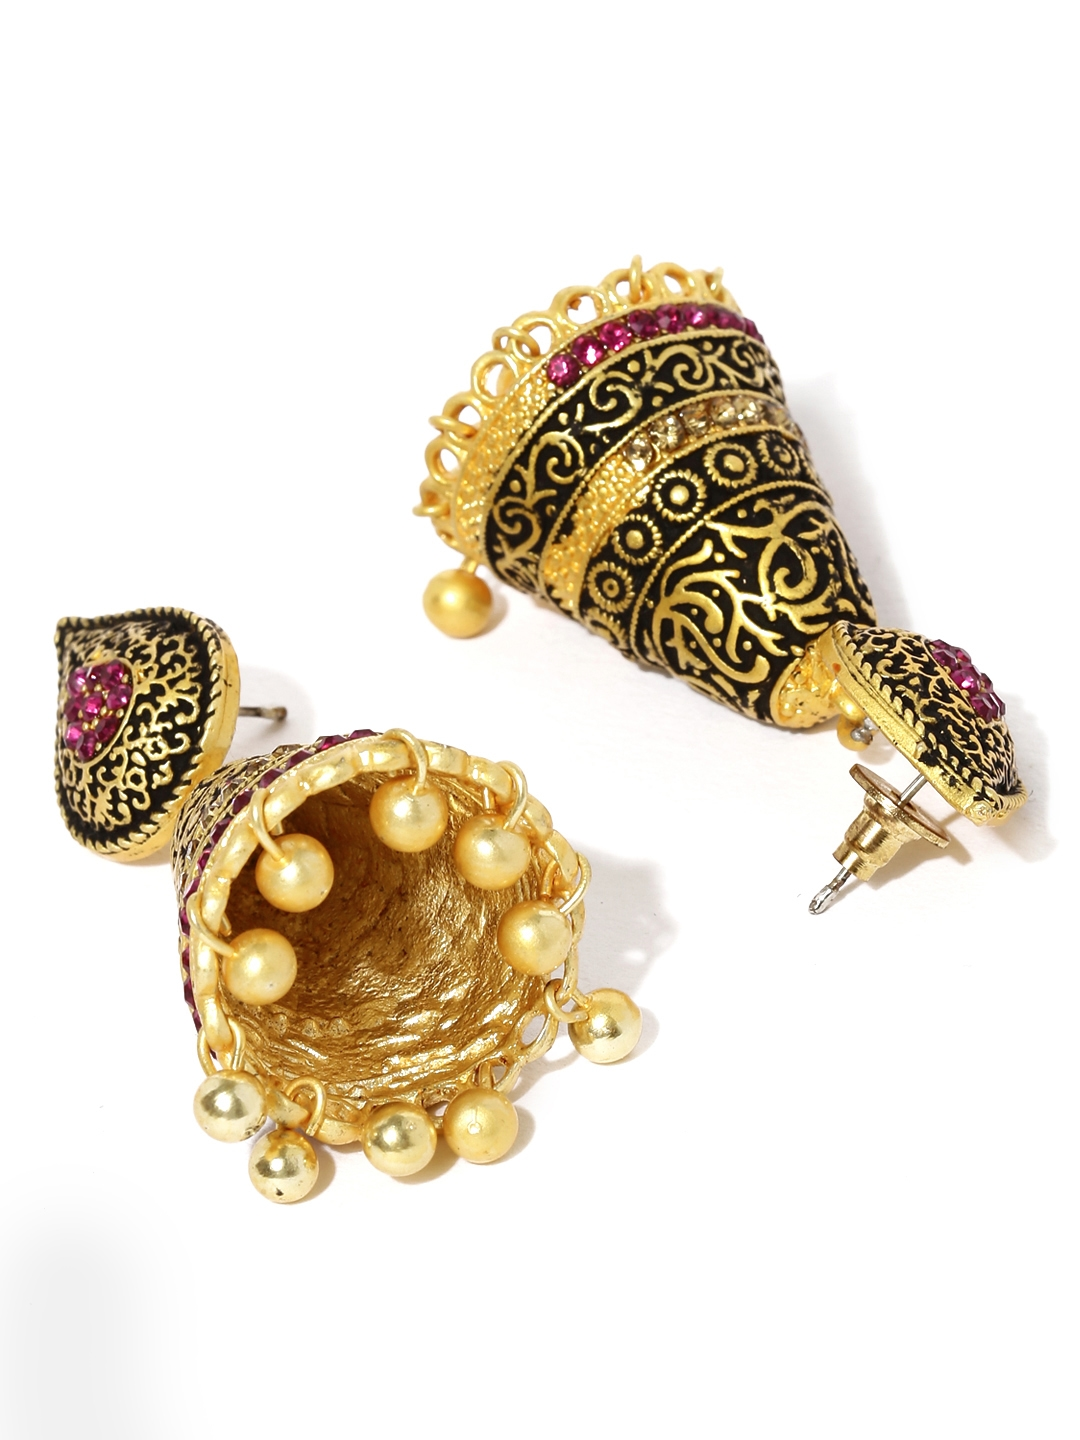 525d9312322 Buy Zaveri Pearls Antique Gold Plated Antique Jhumkas - Earrings for ...